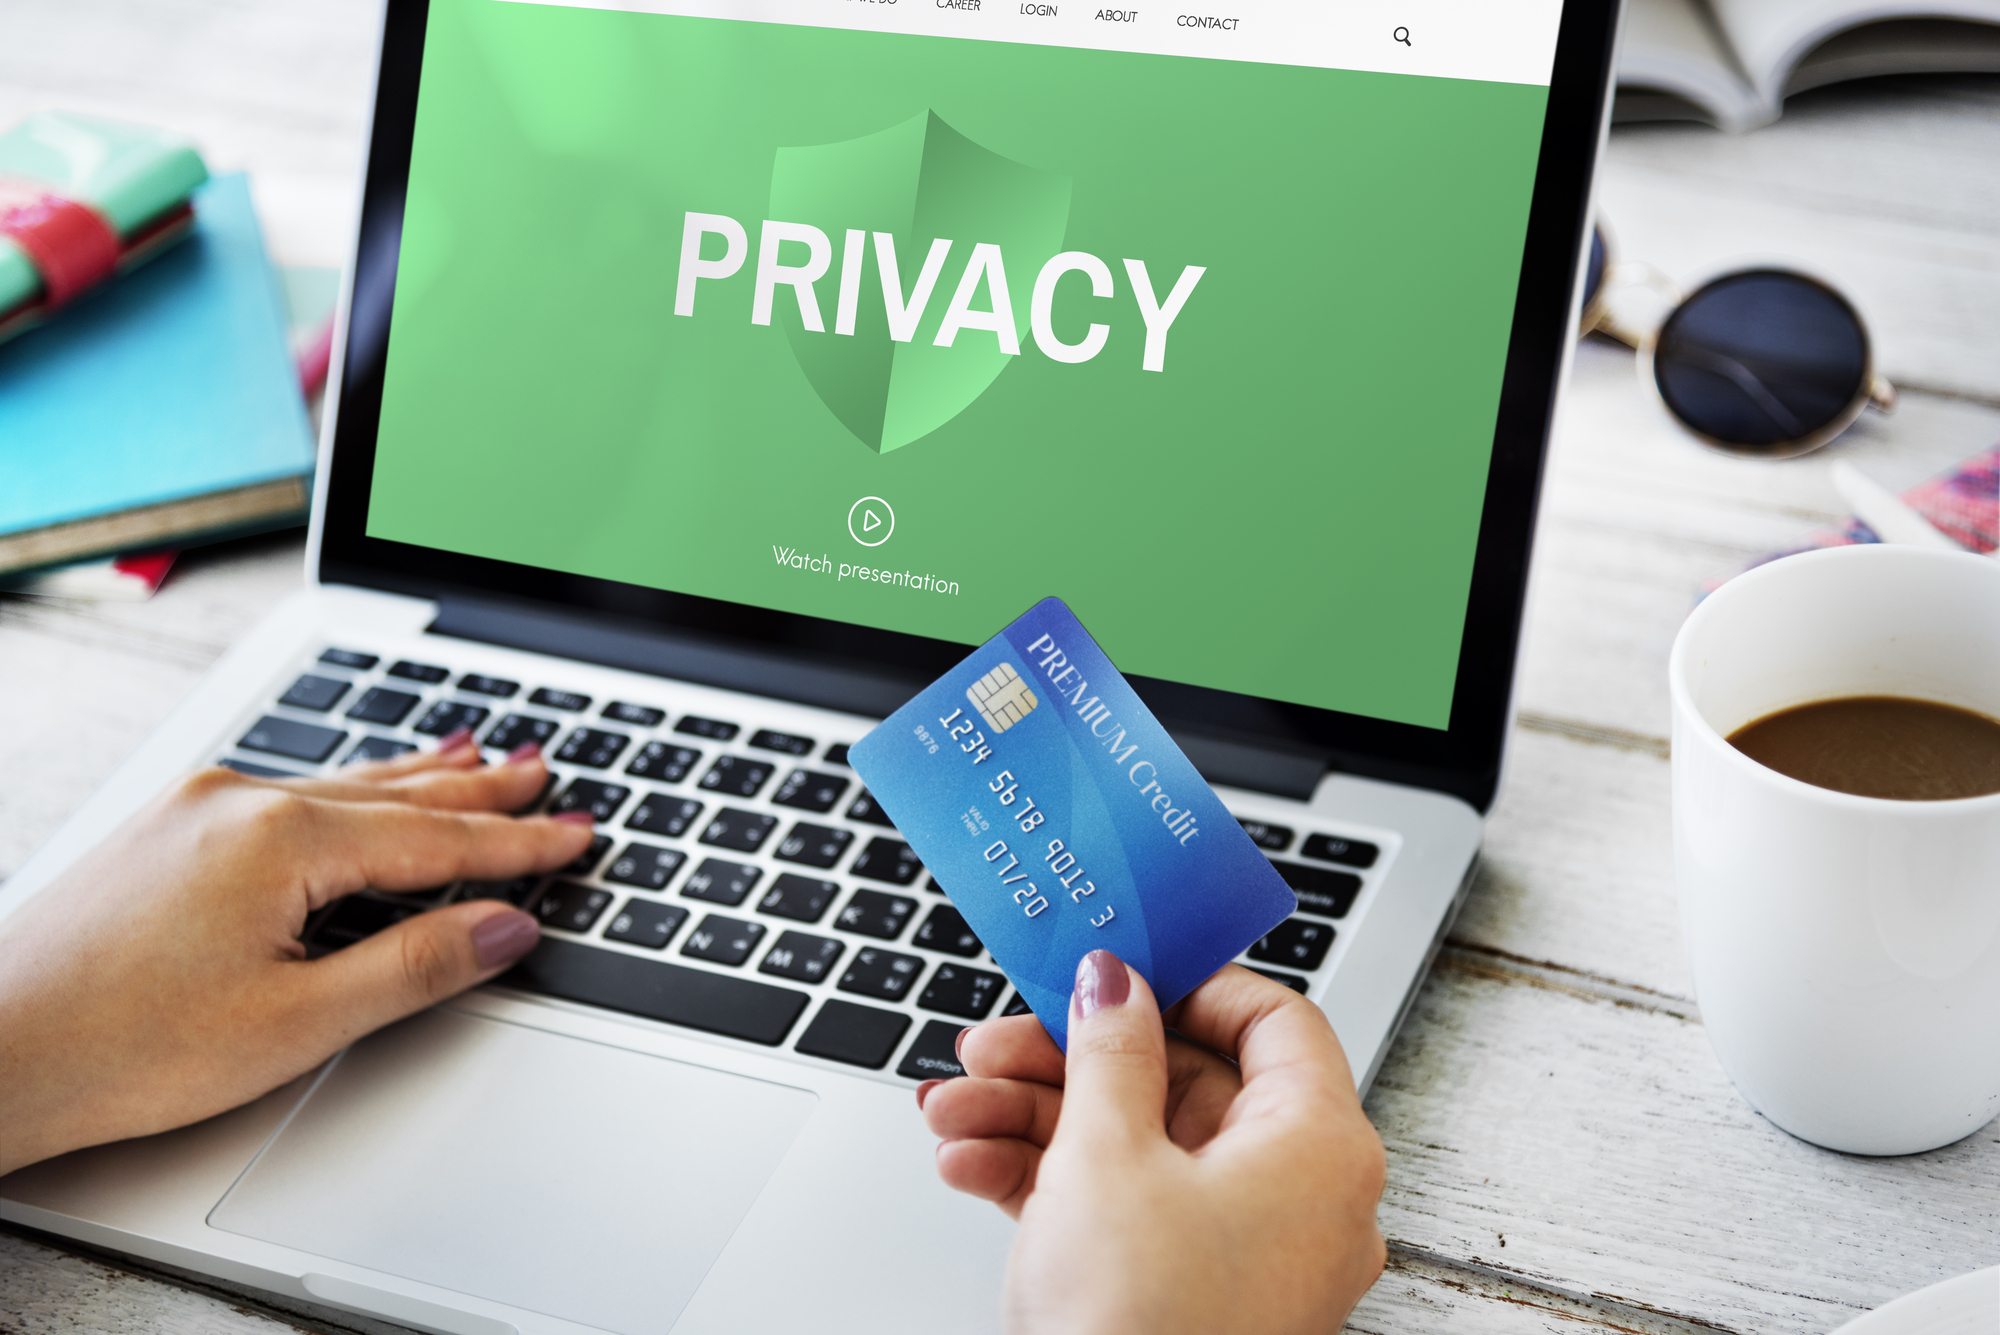 online card payment with security